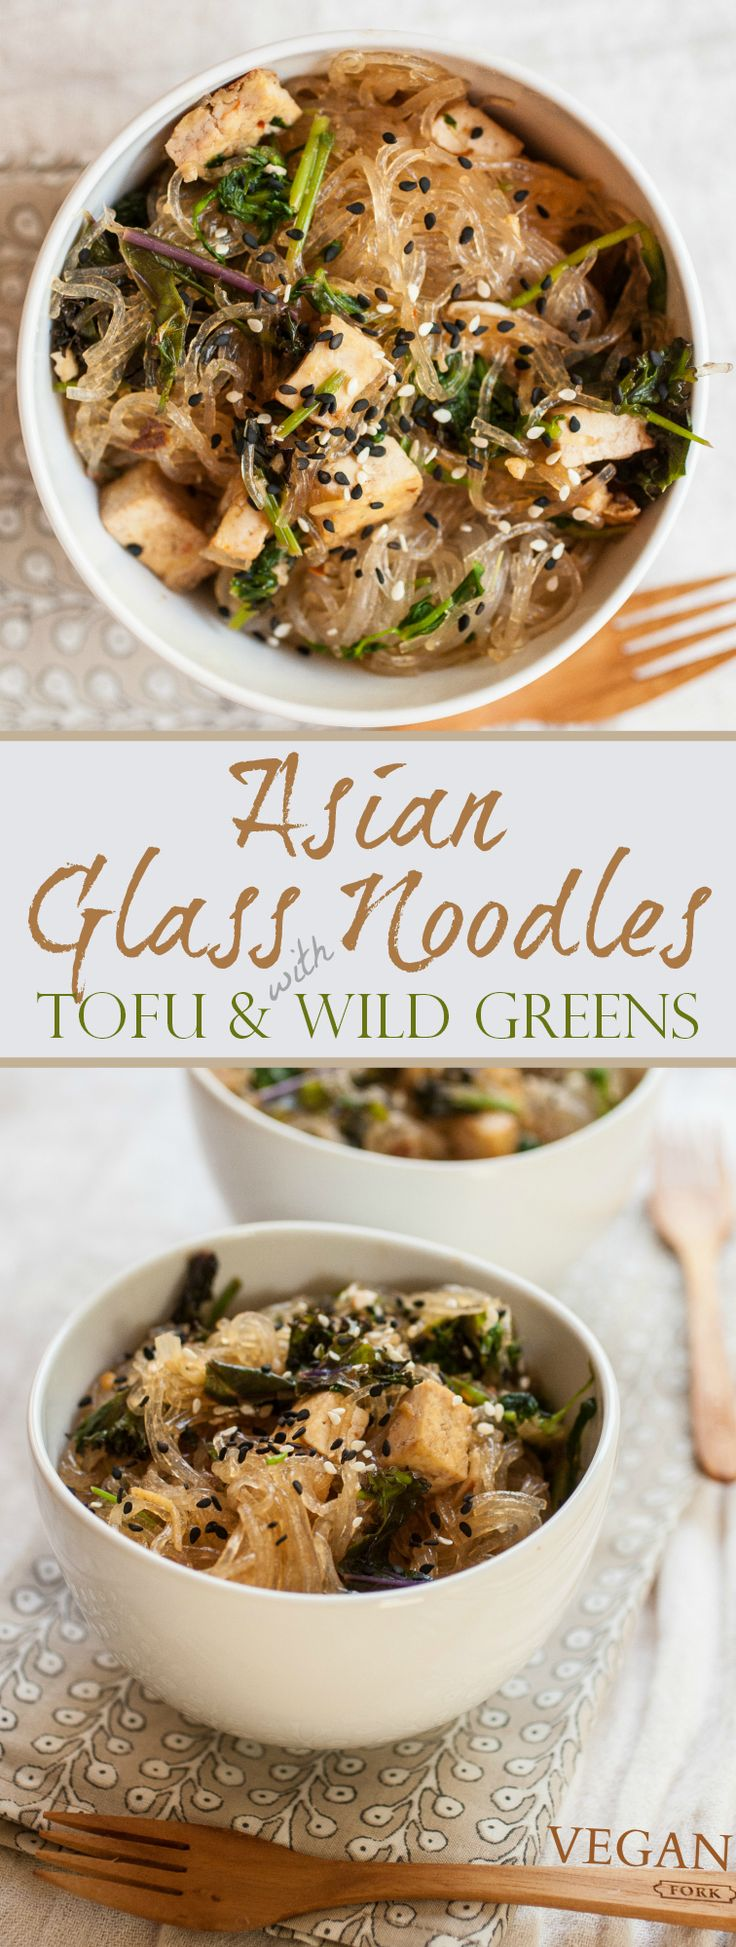 This quick asian dish is infused with ginger, garlic, lime, and sweet chili. Studded with browned tofu, kale and wild greens are strewn throughout the chewy, flavorful glass noodles.